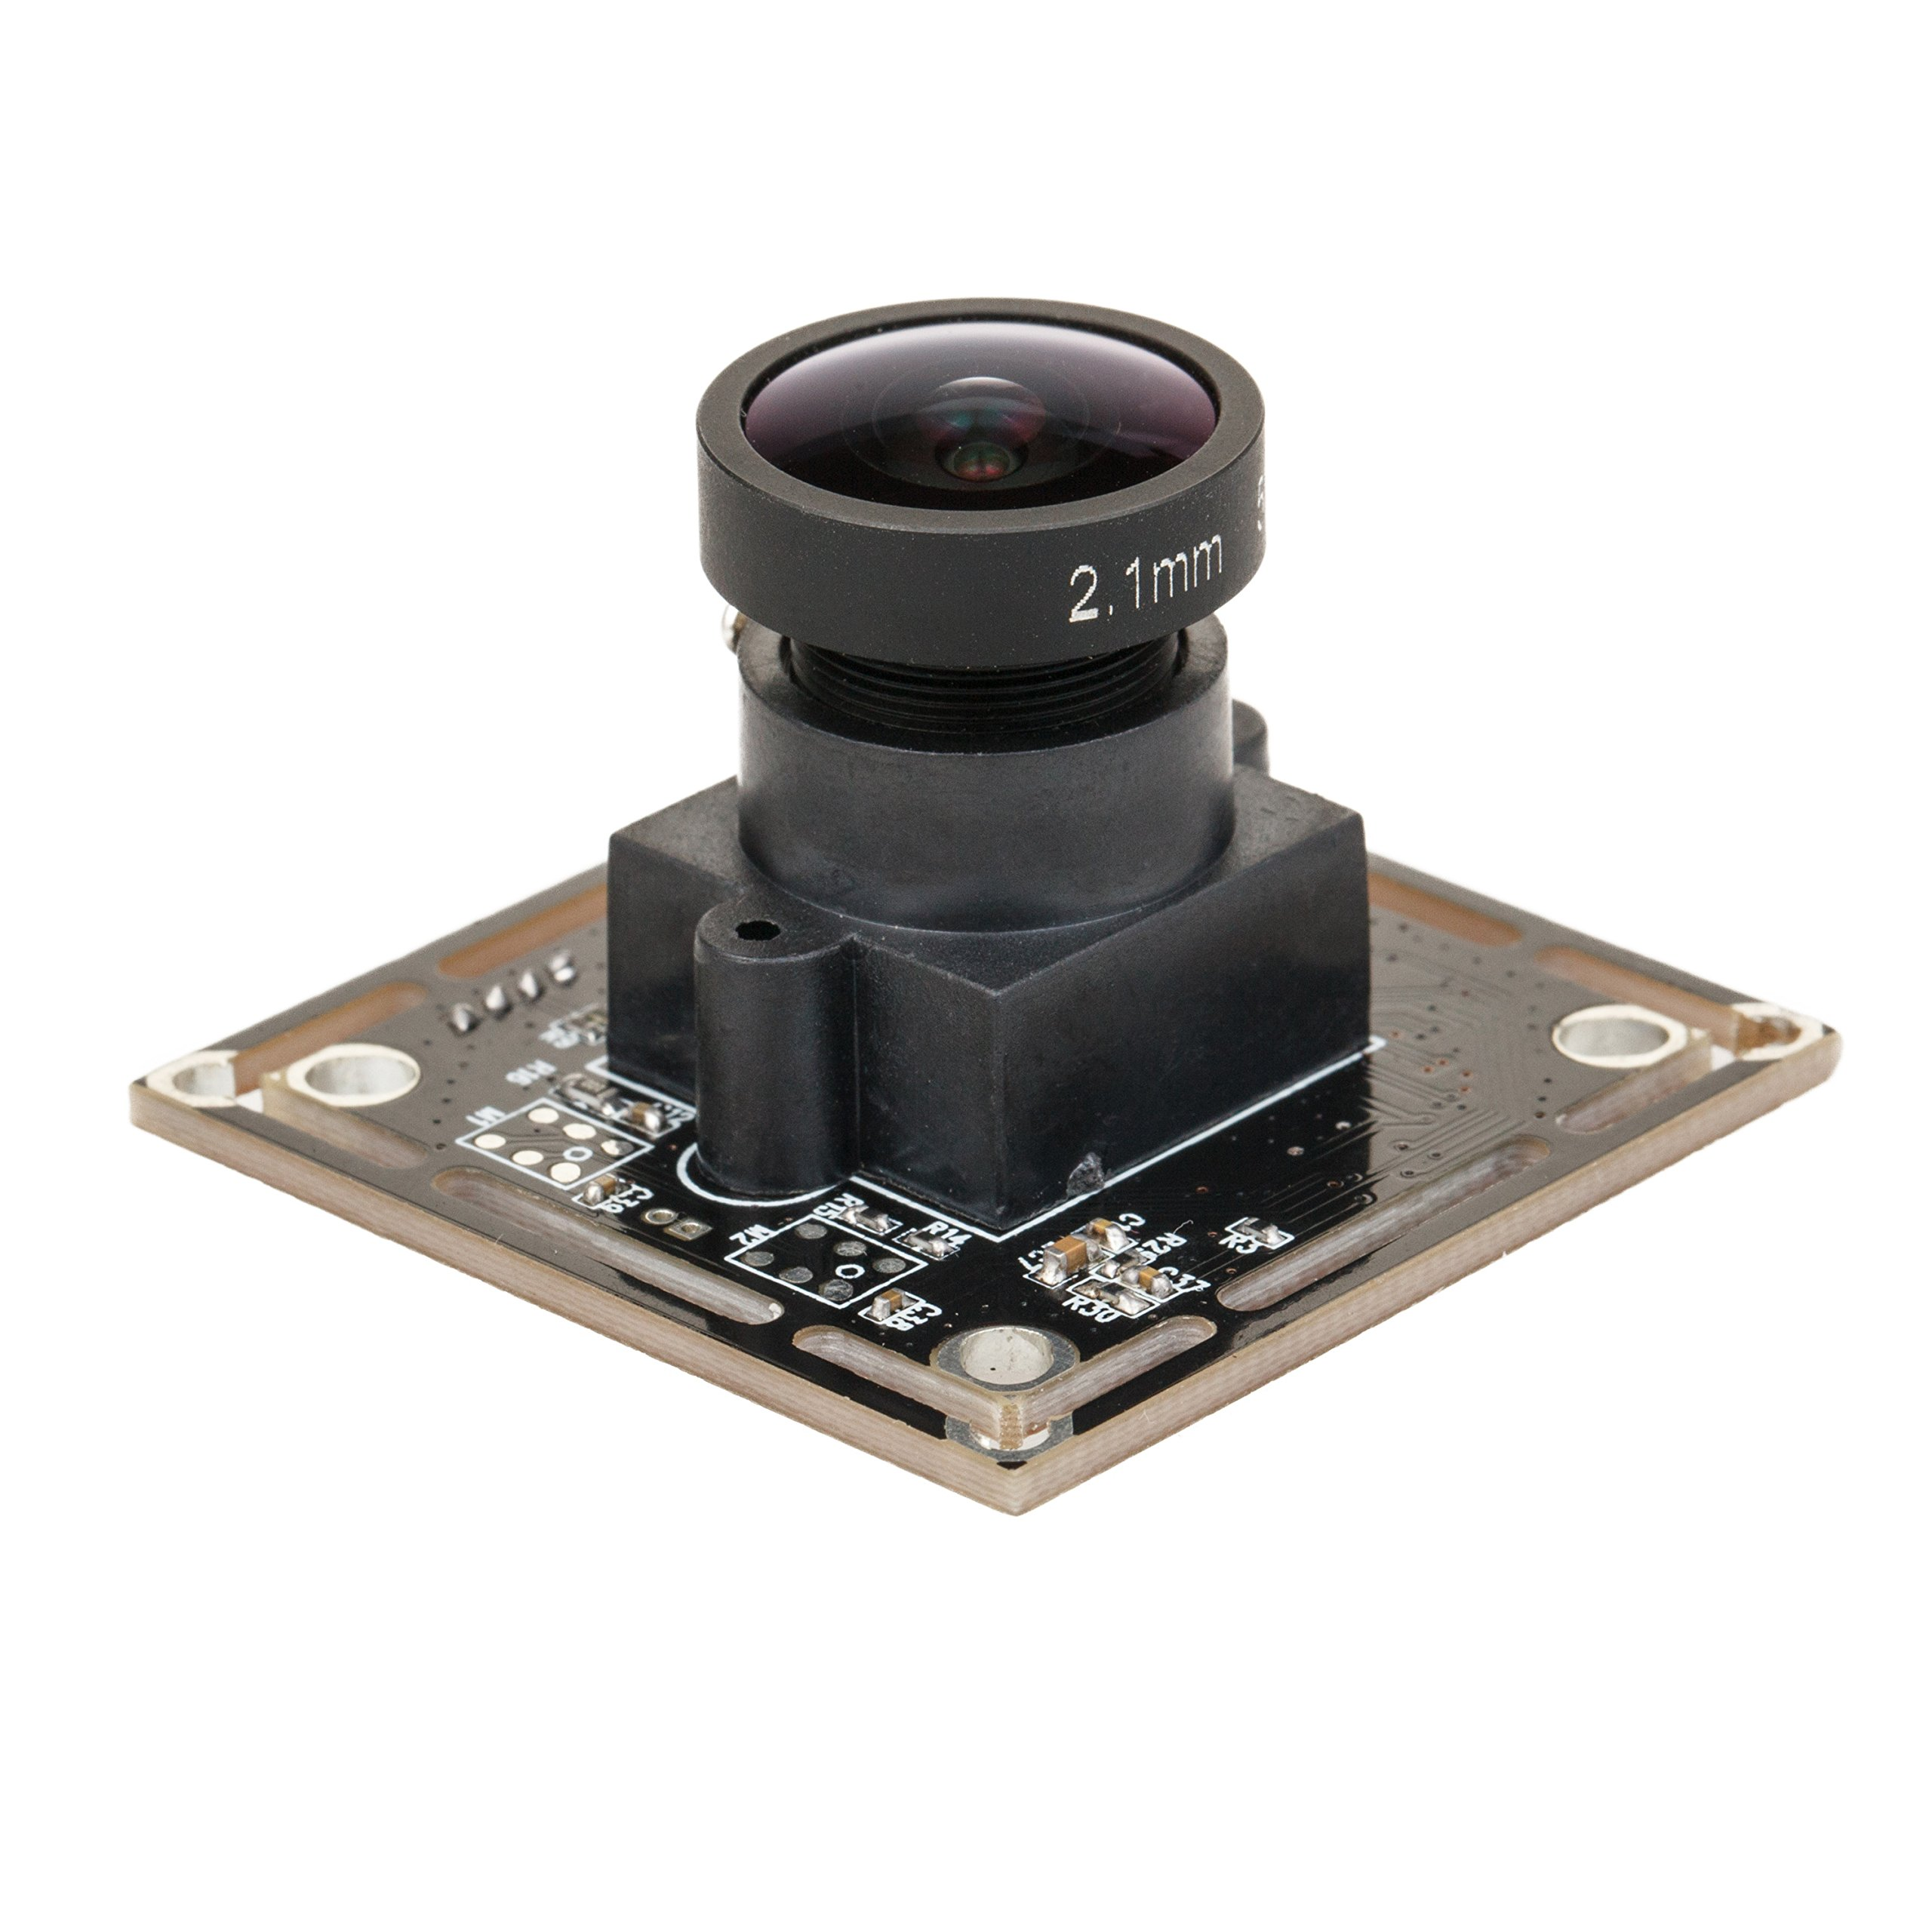 Spinel 2MP full HD Ultra Low Light USB Camera Module, 0.001 LUX with Non-distortion 100 degree Lens, Support 1920x1080@30fps, UVC Compliant, Support Most OS, Focus Adjustable, P/N:UC20MPE_LL_ND